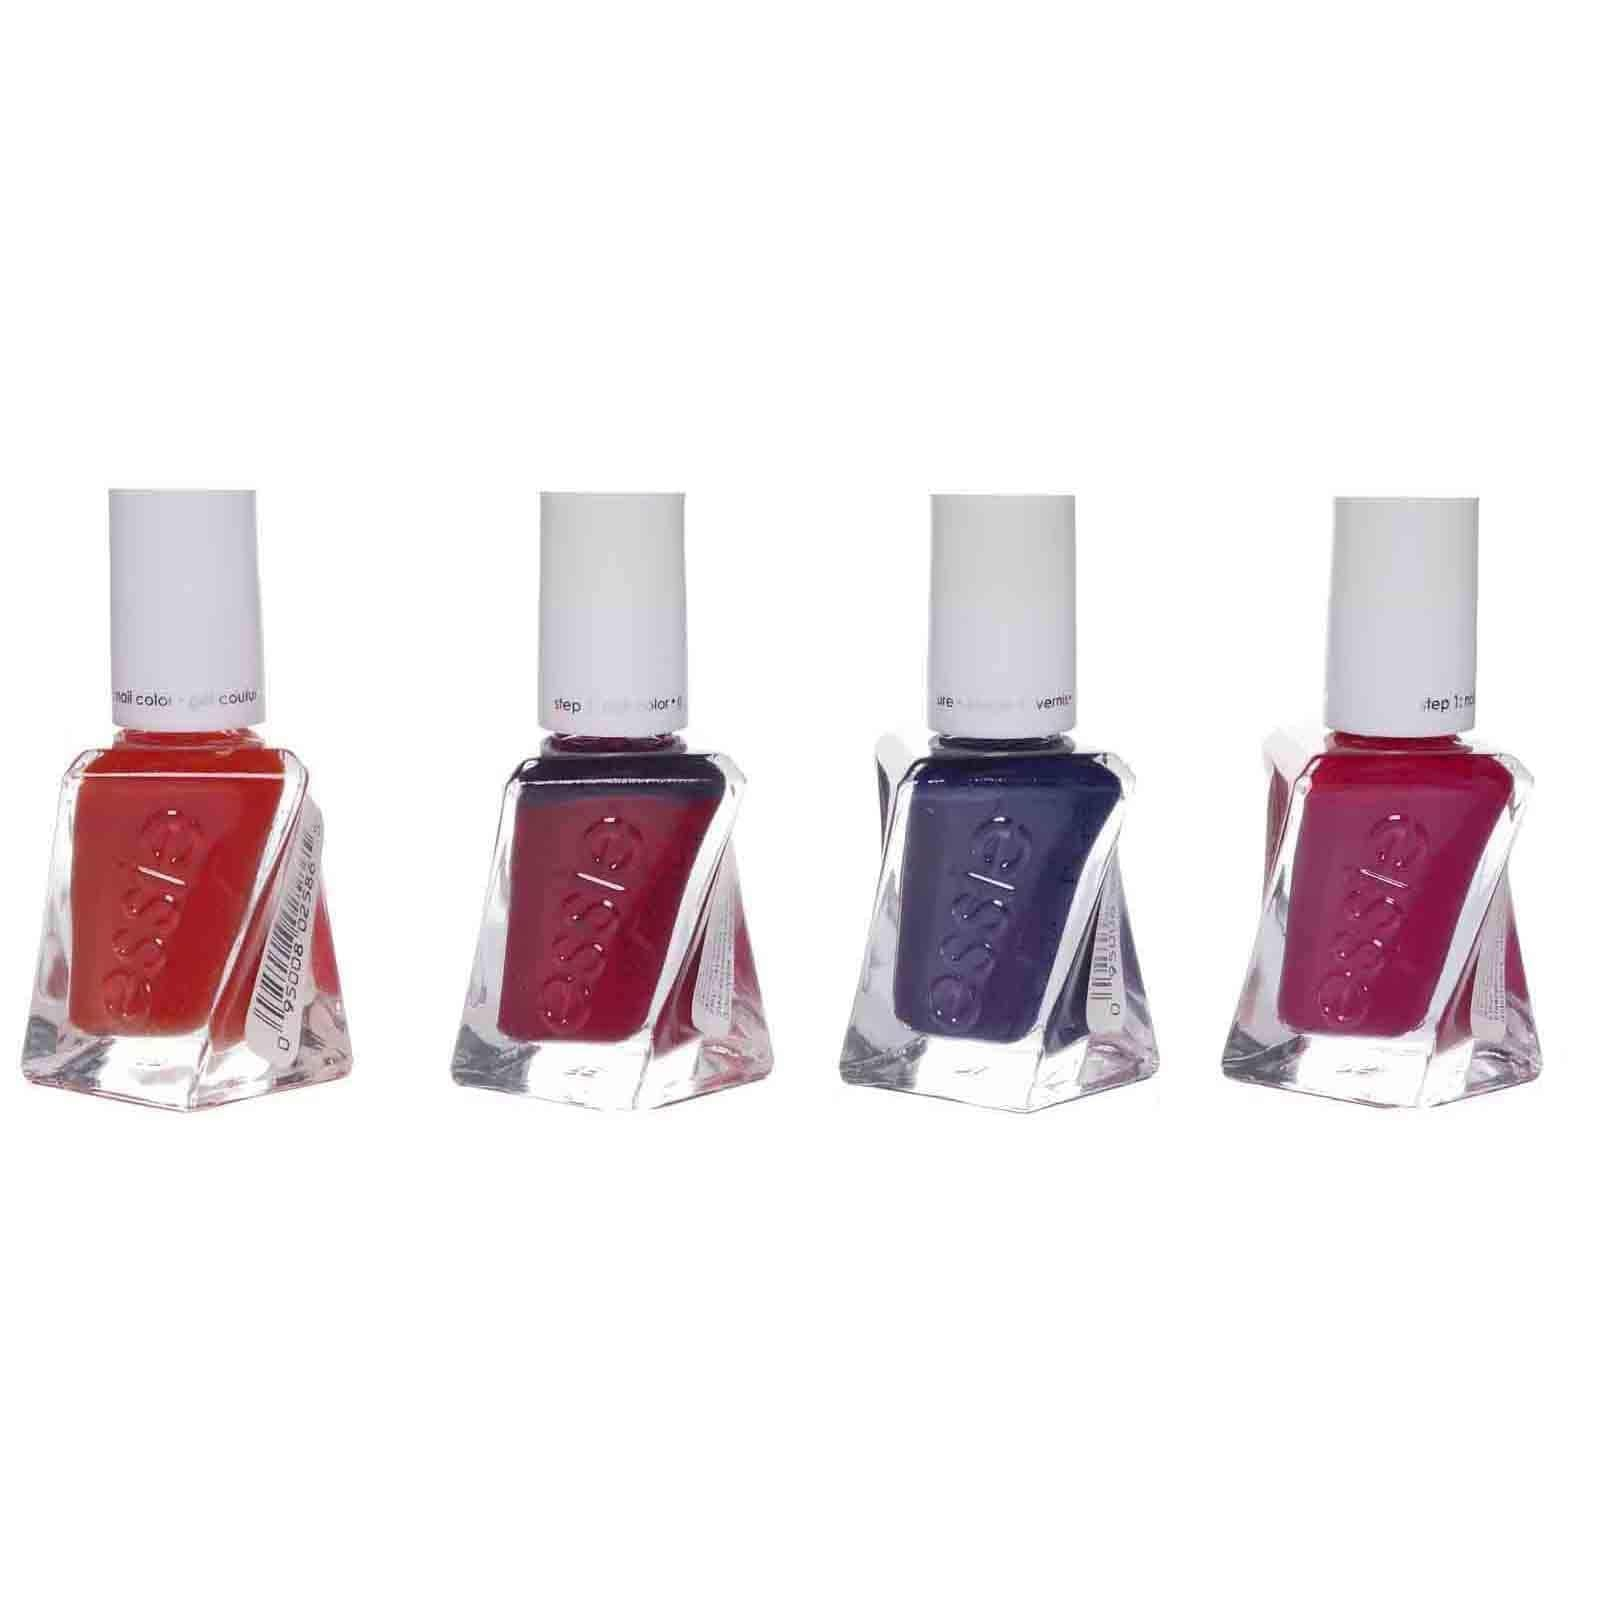 Essie Gel Couture Nail Polish, no lamp needed, easy removal - Assorted Shades 24 Units (0.46oz) (24/cs)